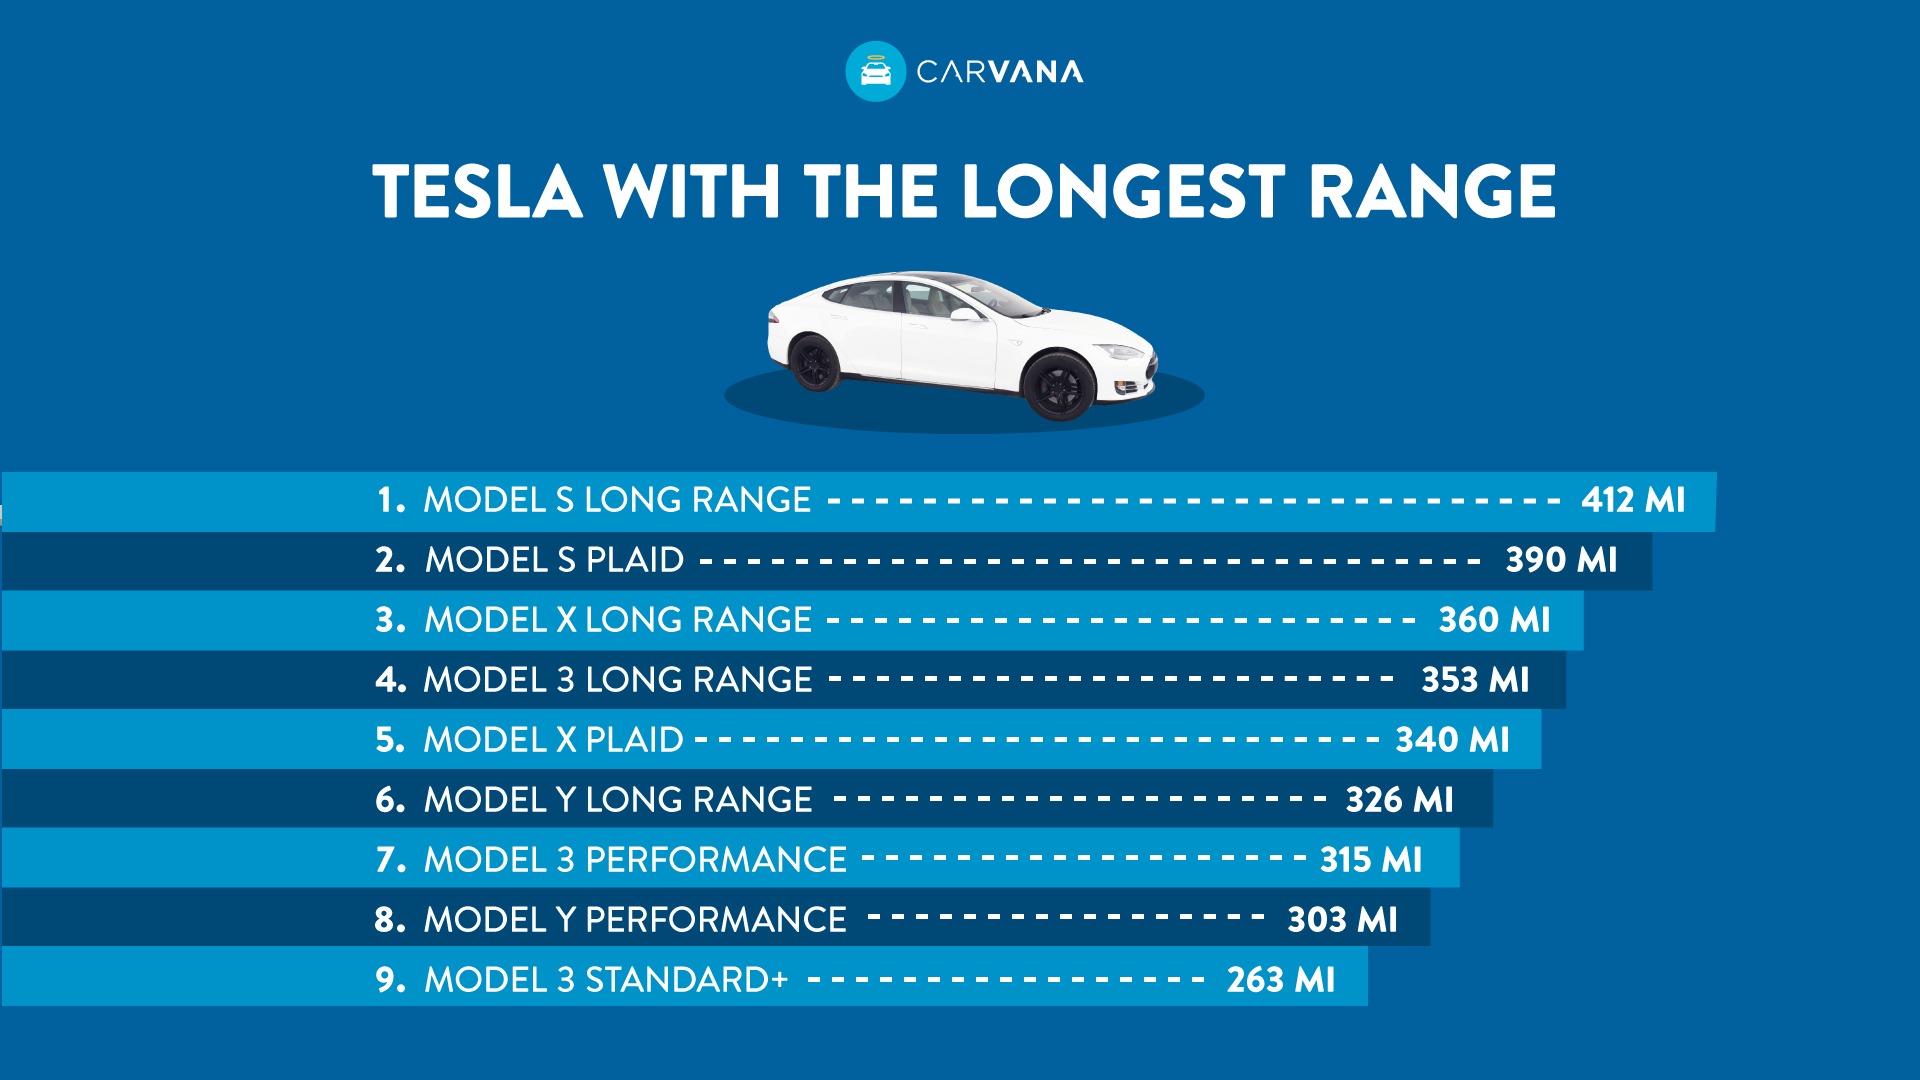 Which Tesla model offers the longest driving range?